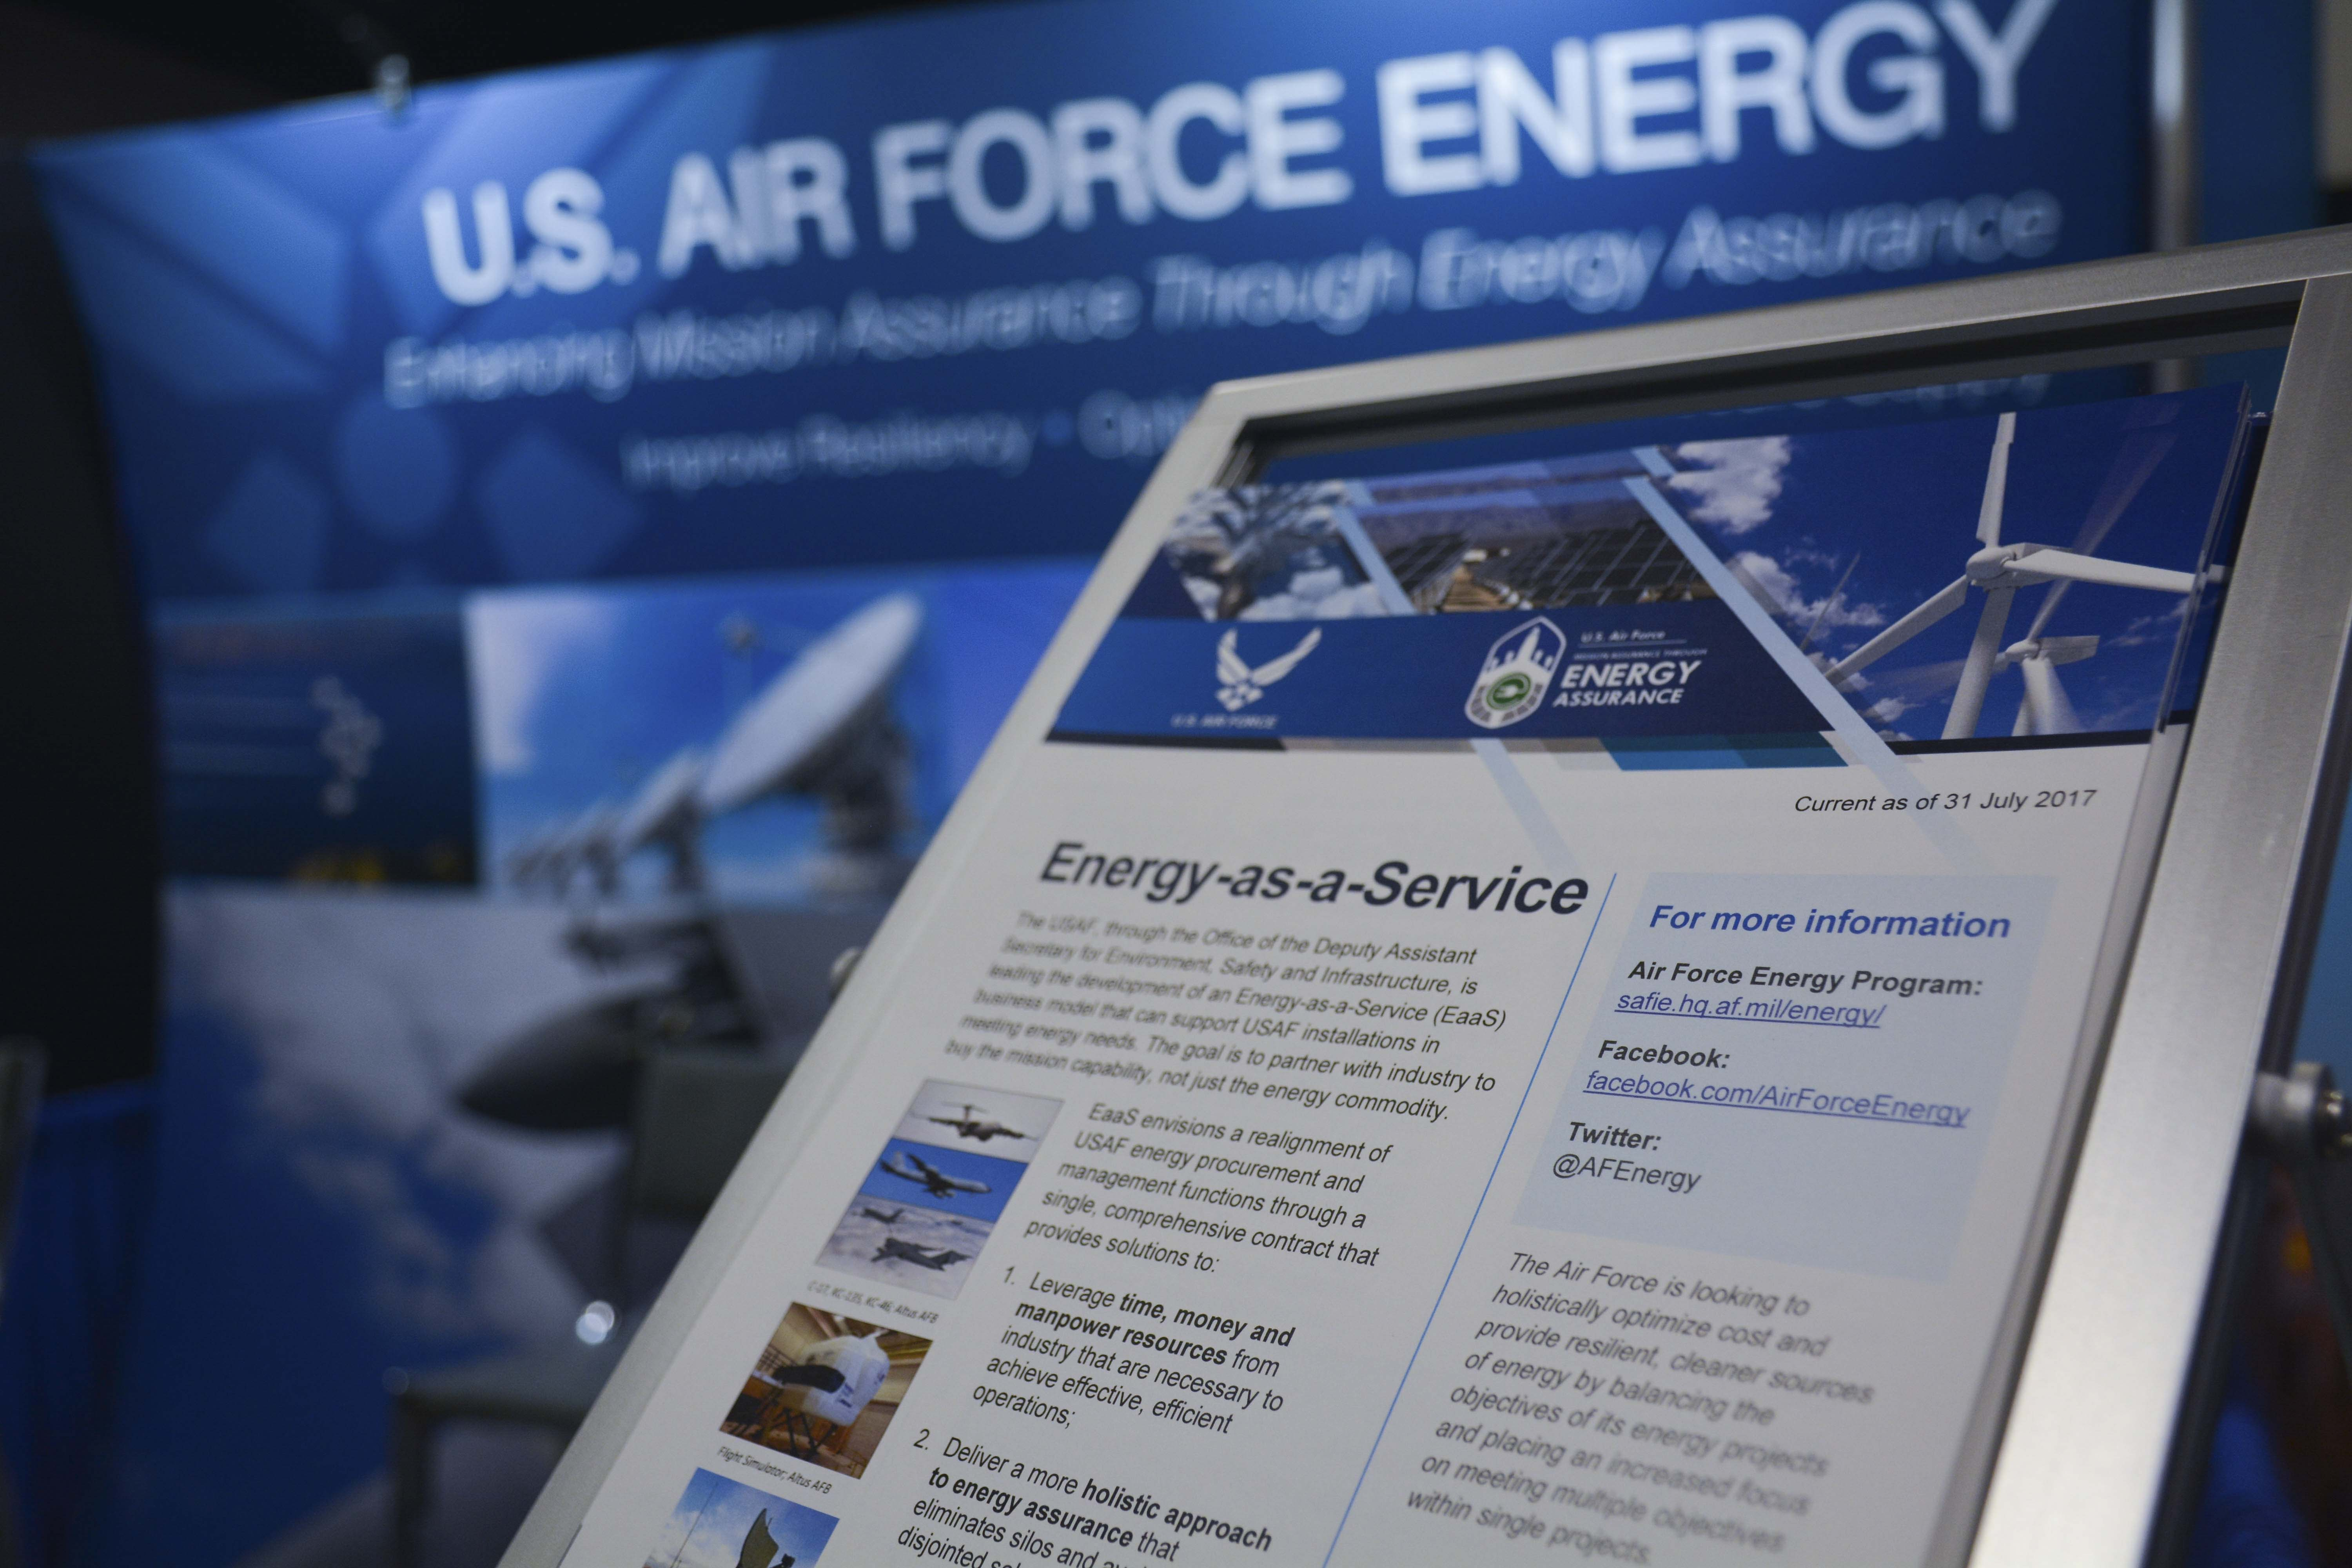 Energy professionals exchange ideas, information at annual